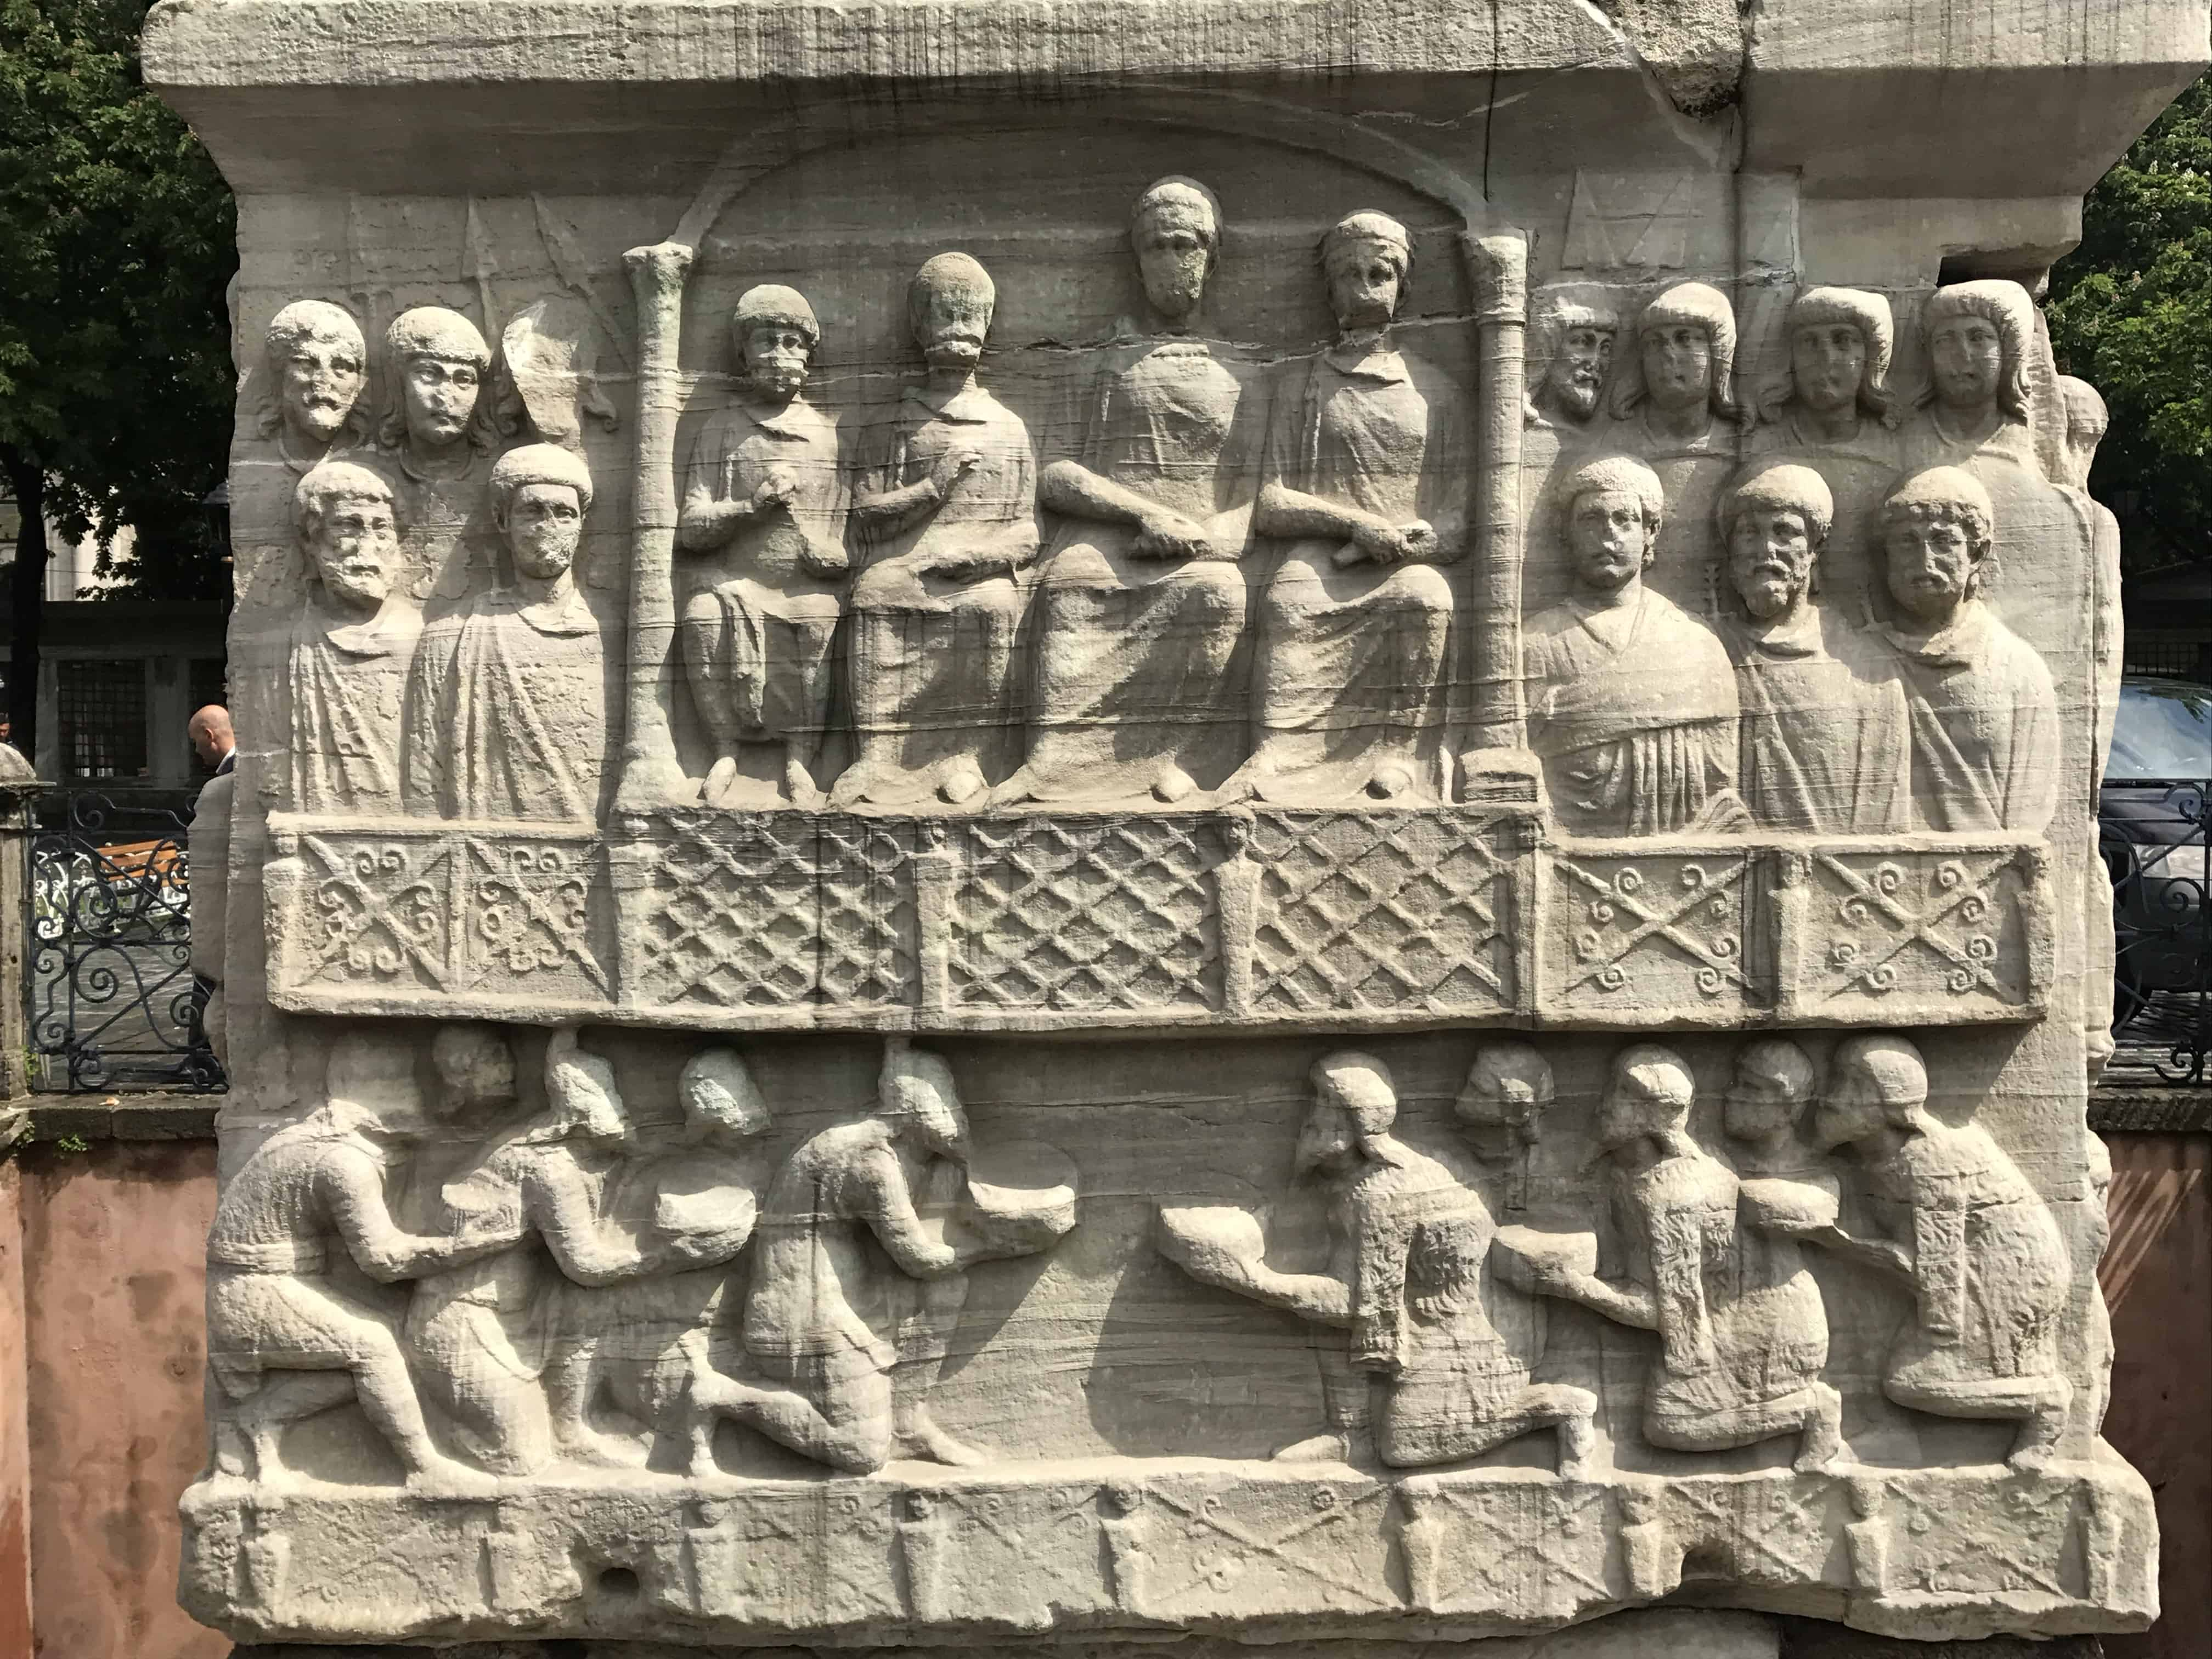 The NW side of the Obelisk of Theodosius's base